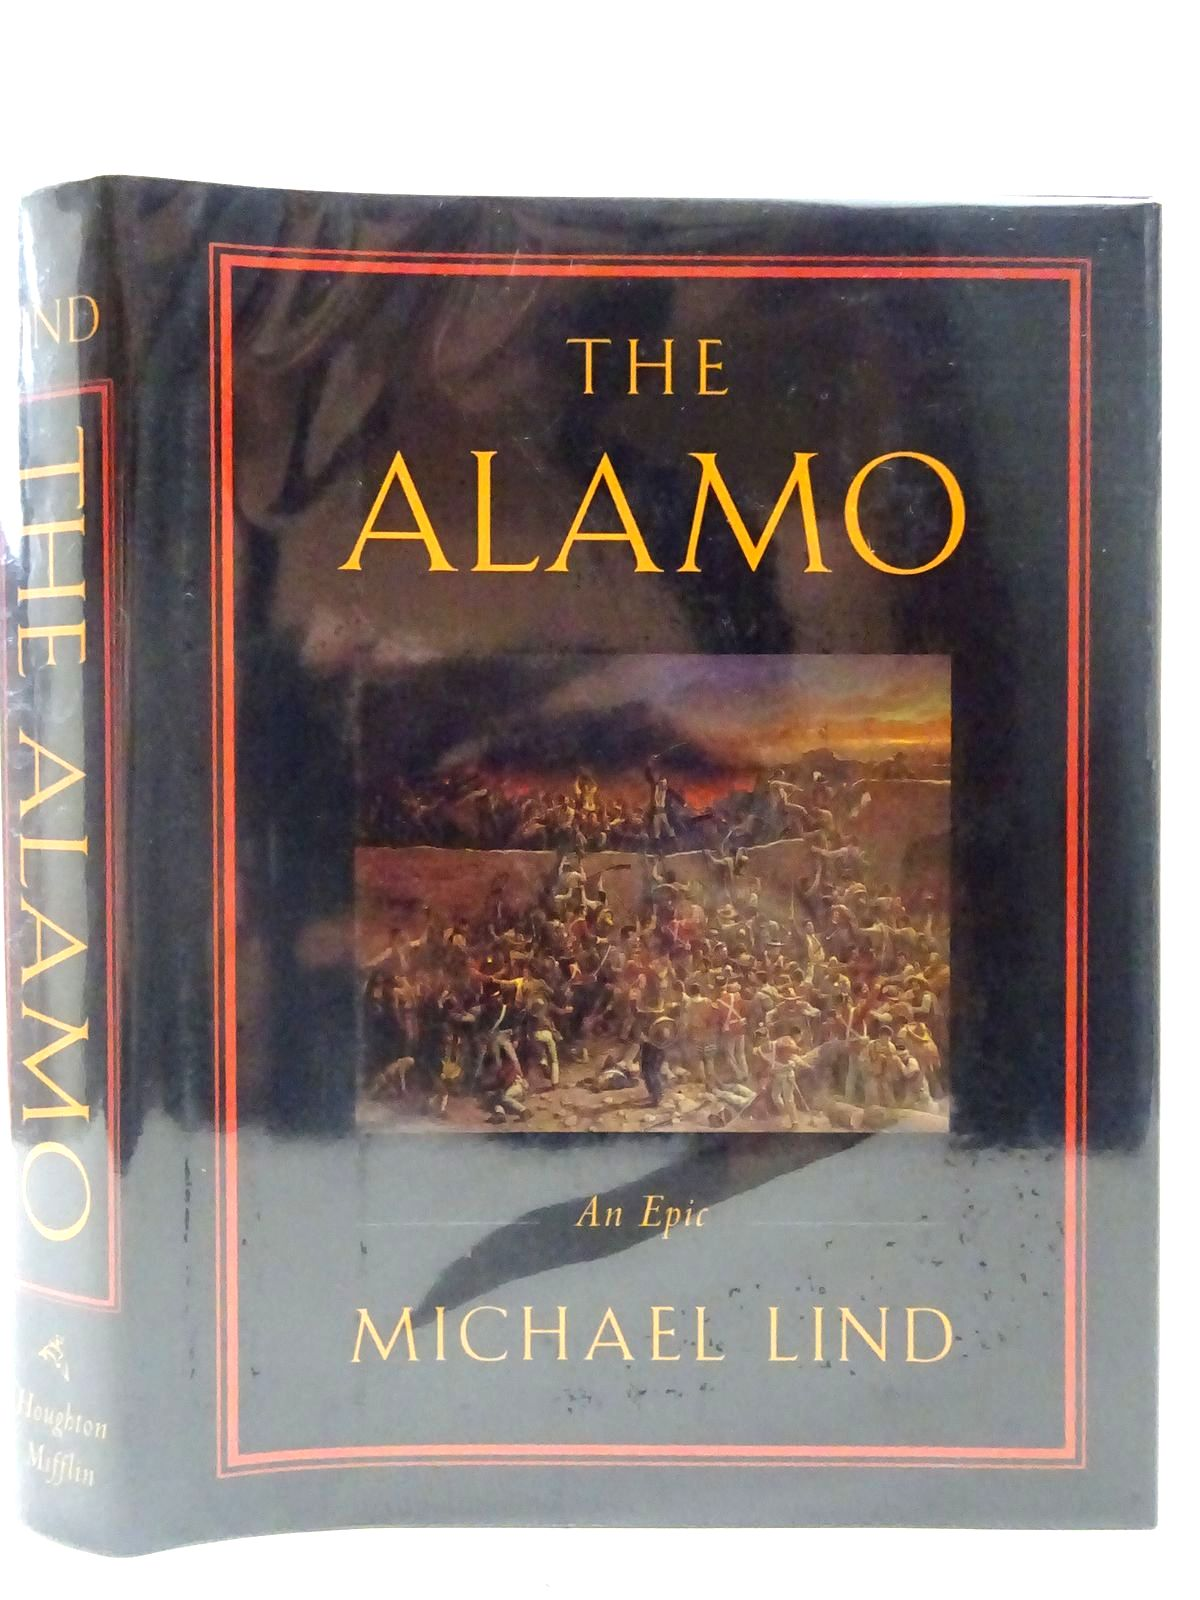 Photo of THE ALAMO AN EPIC written by Lind, Michael published by Houghton Mifflin Company (STOCK CODE: 2126971)  for sale by Stella & Rose's Books